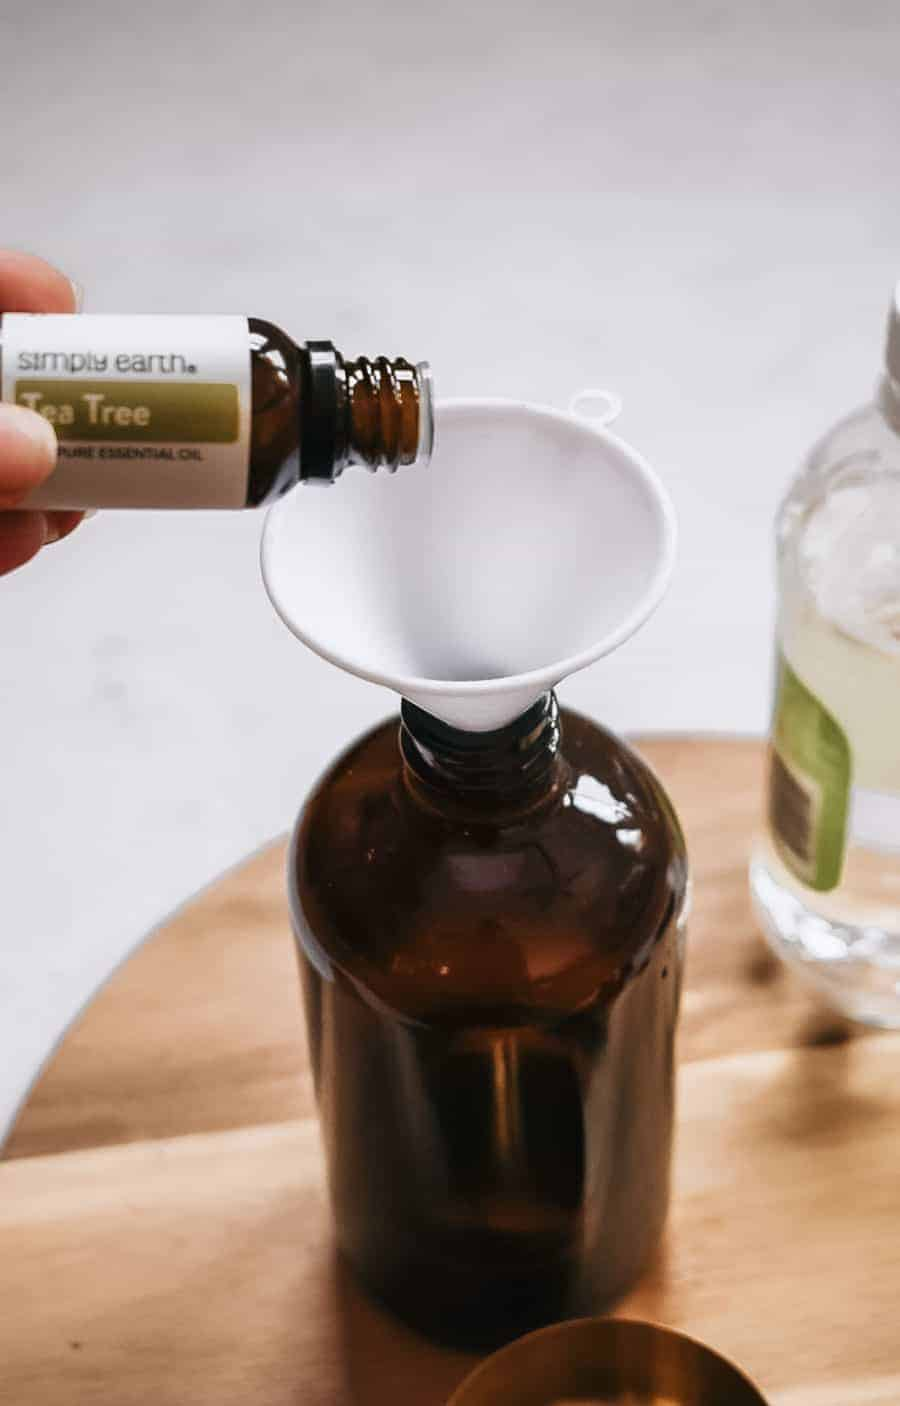 Person pouring tea tree essential oil into brown glass bottle